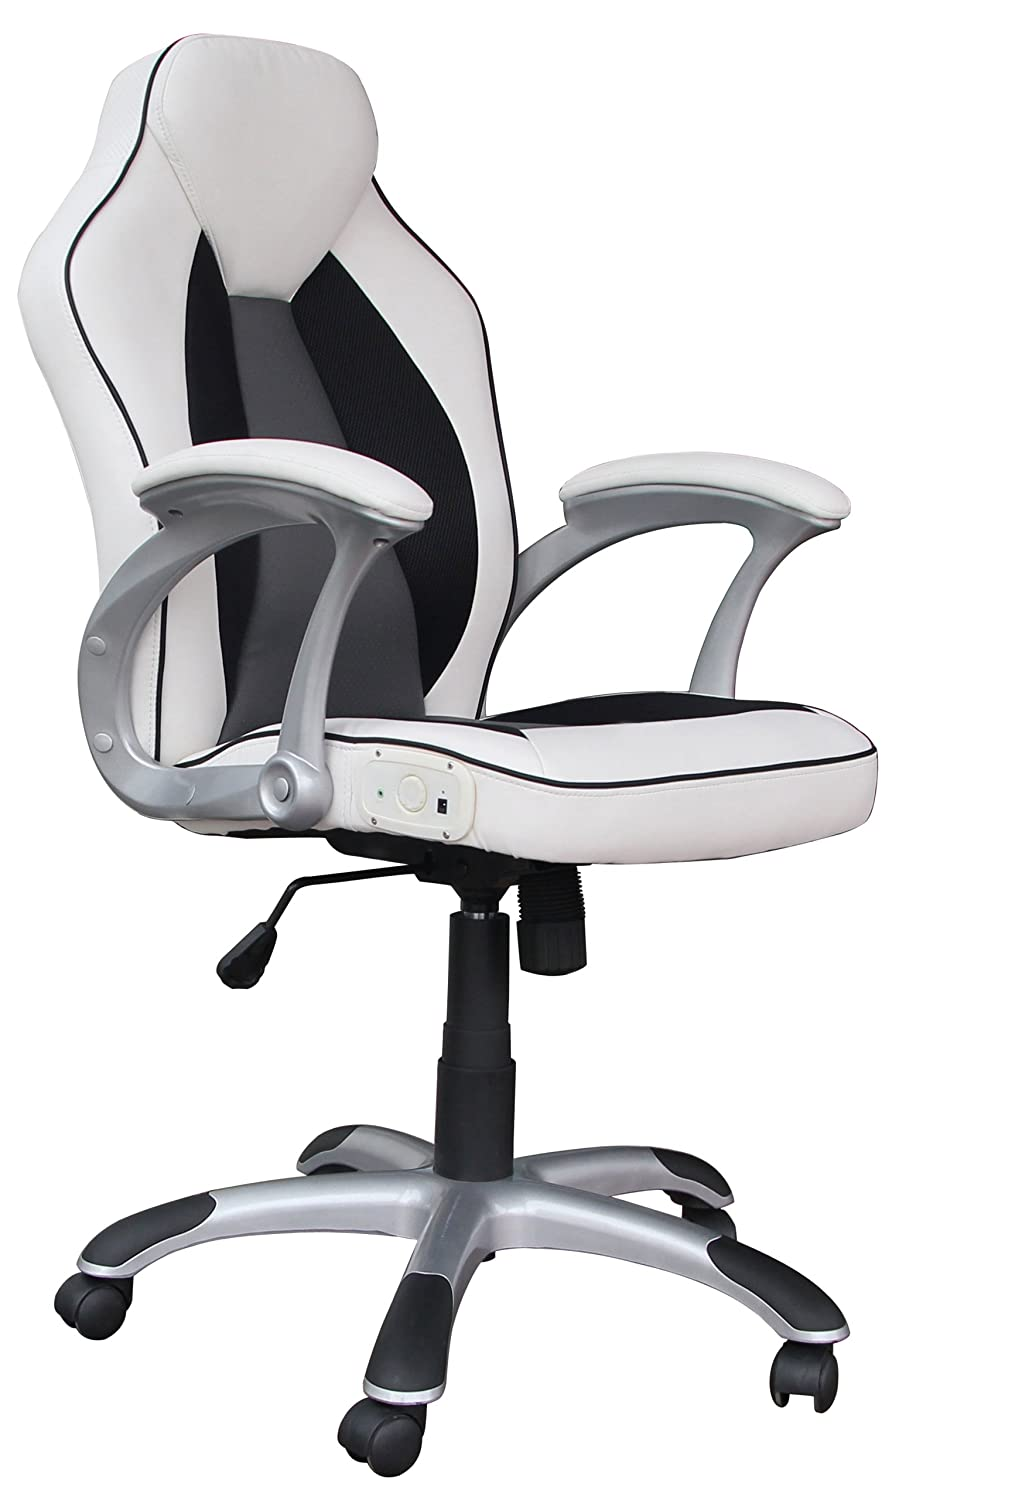 office chair with speakers. Amazon.com: X Rocker 0287401 Executive Office Chair With Bluetooth Sound: Sports \u0026 Outdoors Speakers M